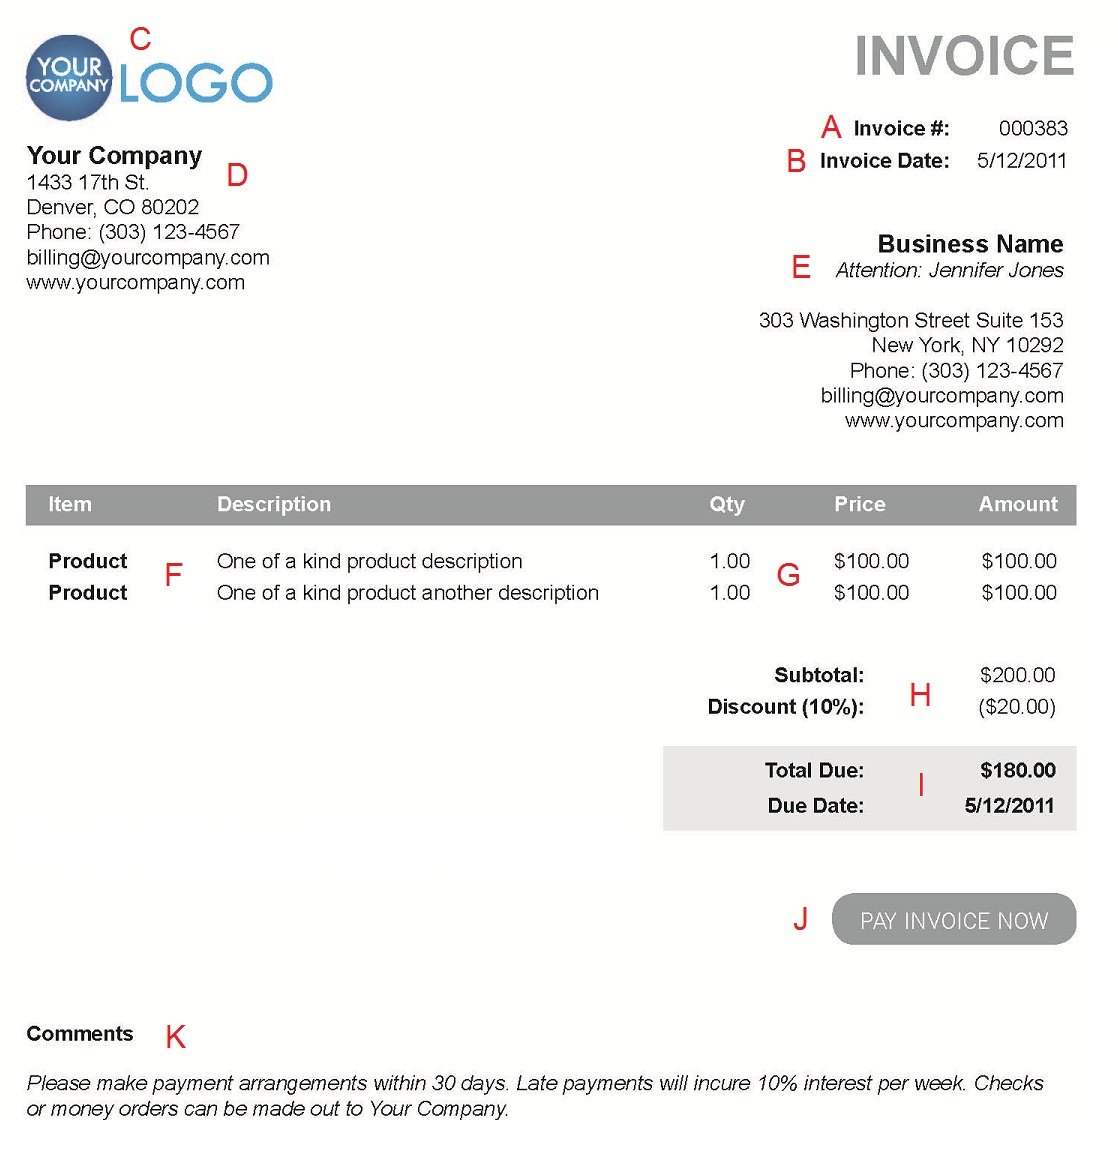 Bringjacobolivierhomeus  Remarkable The  Different Sections Of An Electronic Payment Invoice With Inspiring A  With Delightful Shopify Invoice Generator Also Sample Independent Contractor Invoice In Addition Invoice For Photography And Microsoft Invoicing As Well As Best Invoice Software For Small Business Free Additionally Edi  Invoice From Paysimplecom With Bringjacobolivierhomeus  Inspiring The  Different Sections Of An Electronic Payment Invoice With Delightful A  And Remarkable Shopify Invoice Generator Also Sample Independent Contractor Invoice In Addition Invoice For Photography From Paysimplecom